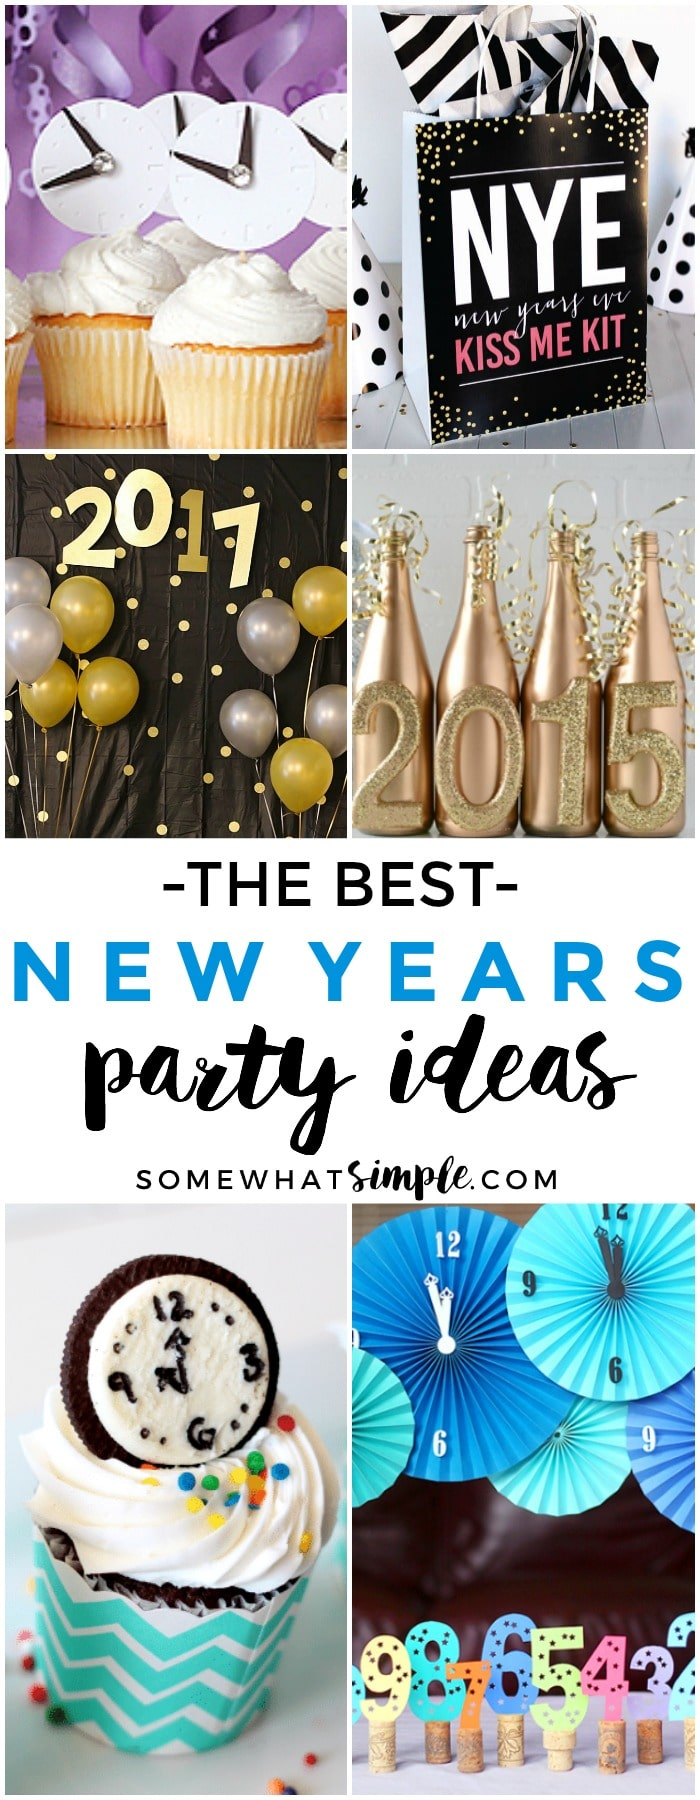 Don't stress over planning afabulous NYE party. Here are some favorite New Years Eve party ideas to make the last holiday bash of the year a total smash!